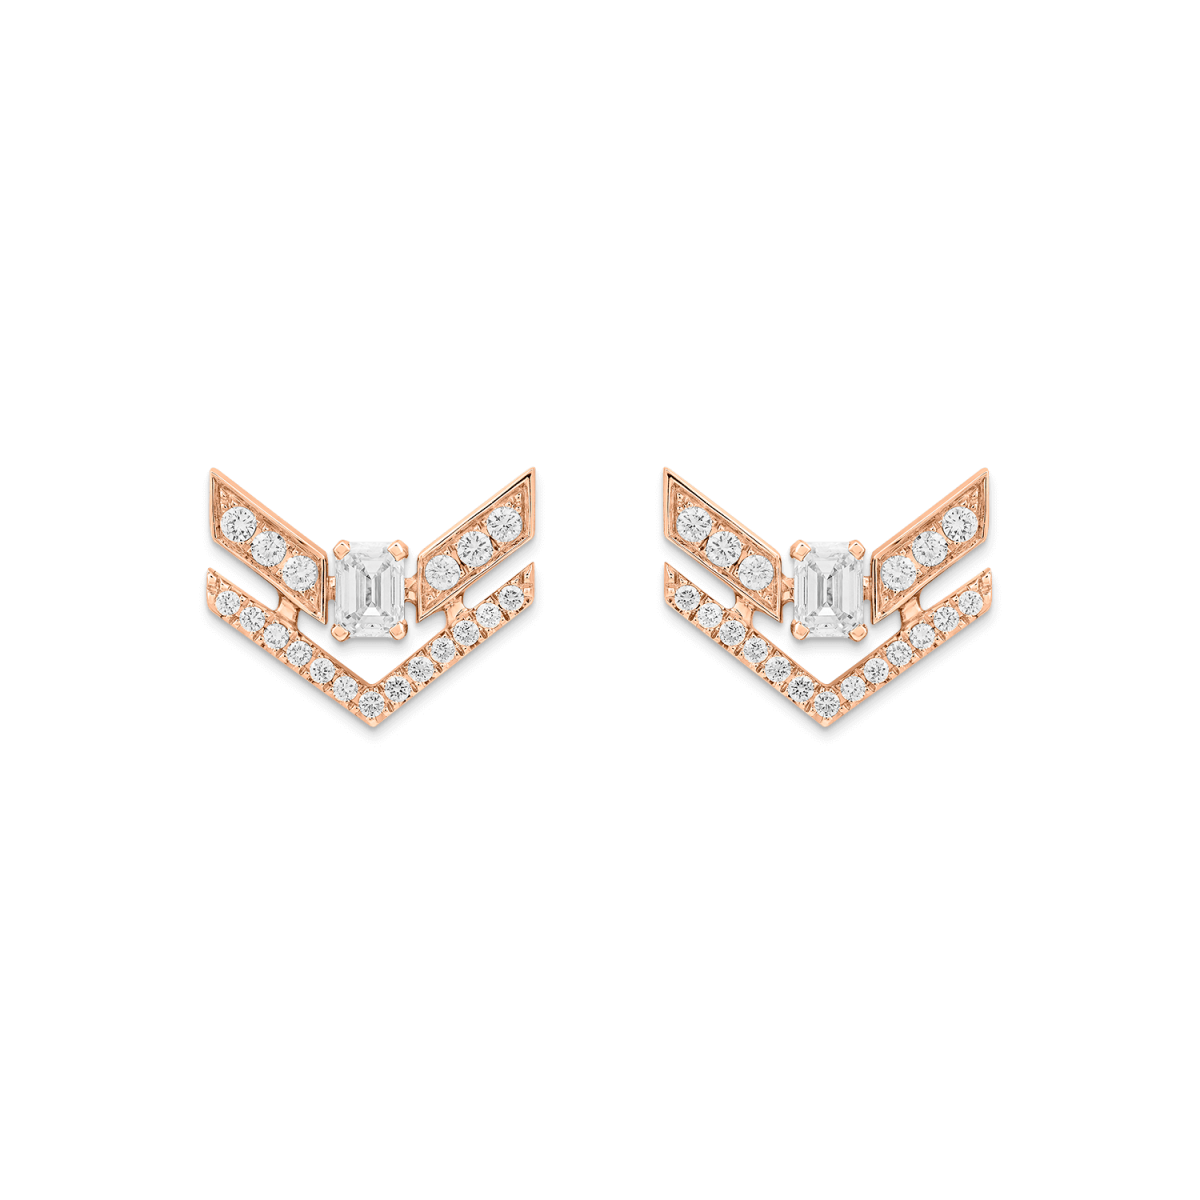 rose gold earrings with diamonds